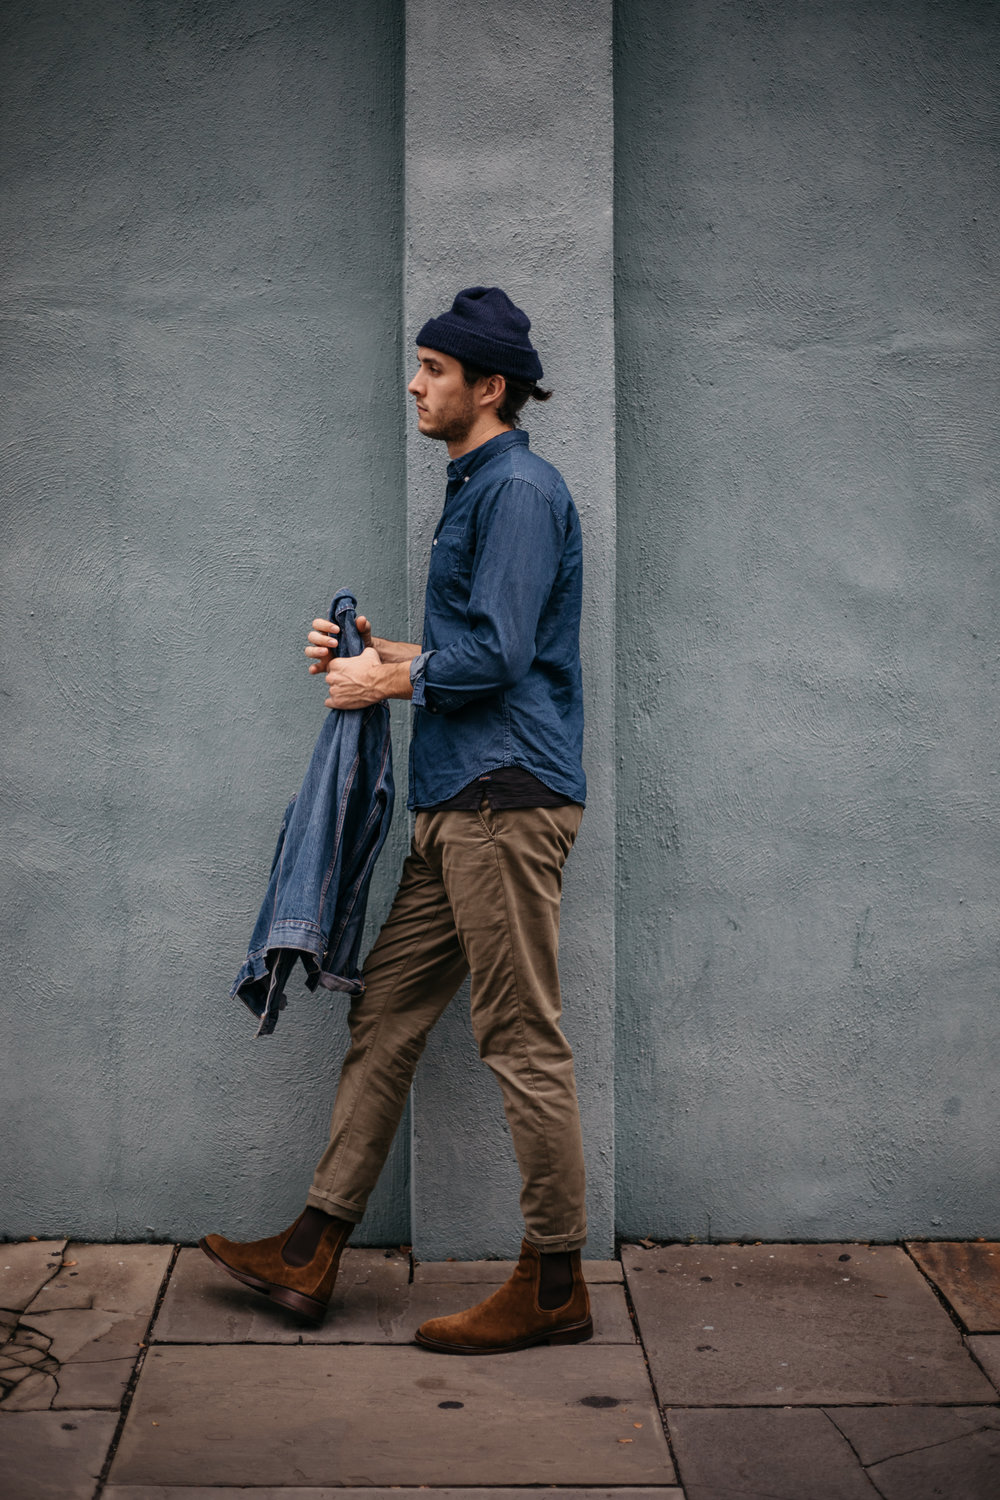 Clay's Look - 01. The Good Man Brand Polo 02. Rag & Bone Chinos